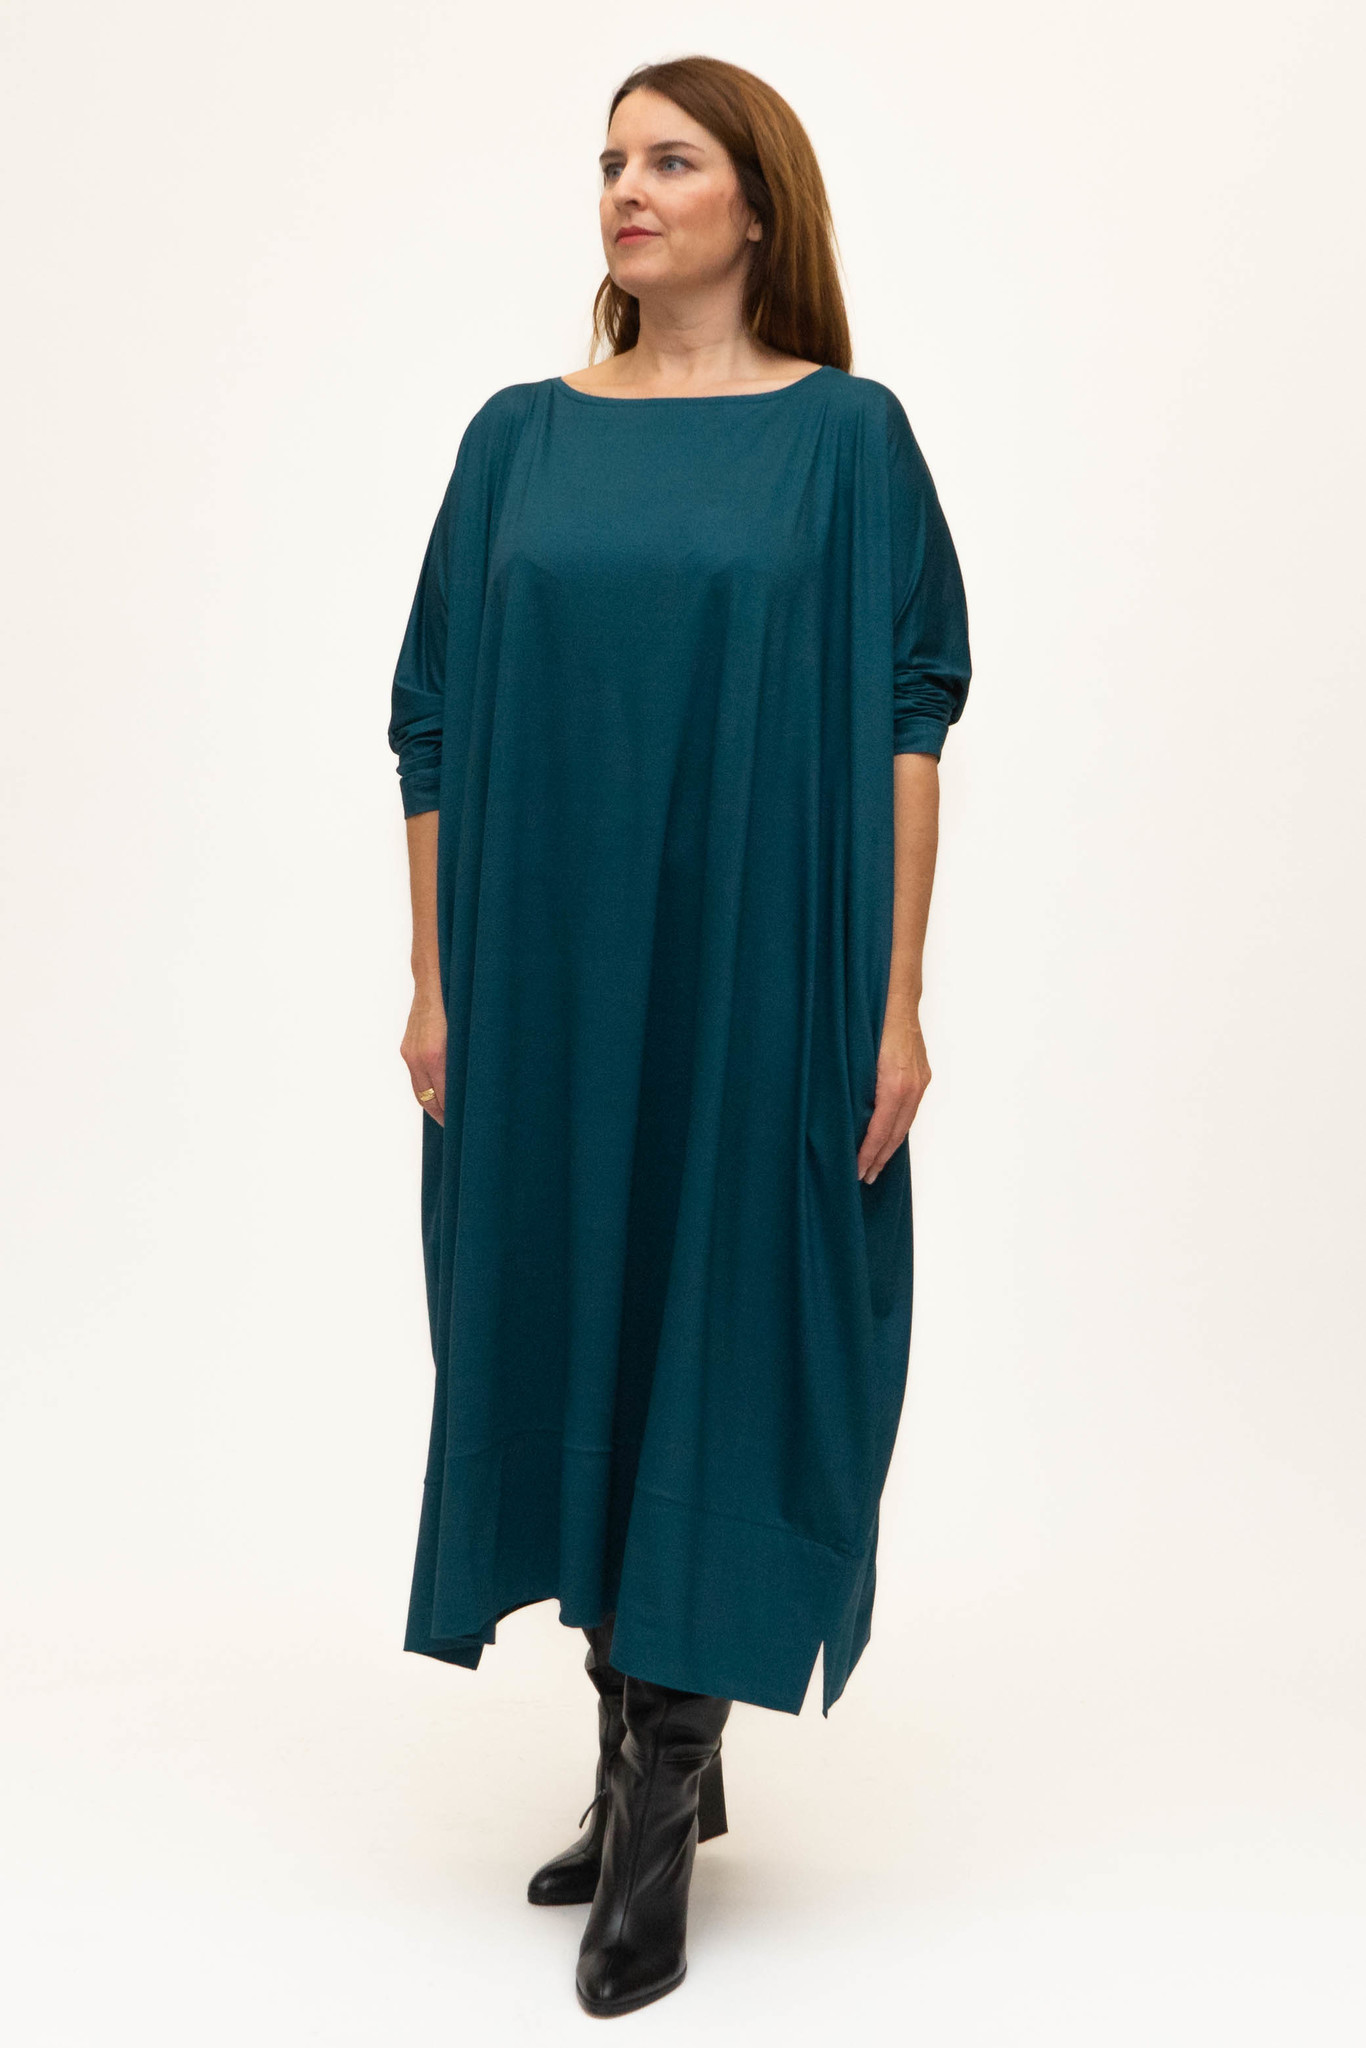 MAAYAN Dress in Viscose-Jersey-5